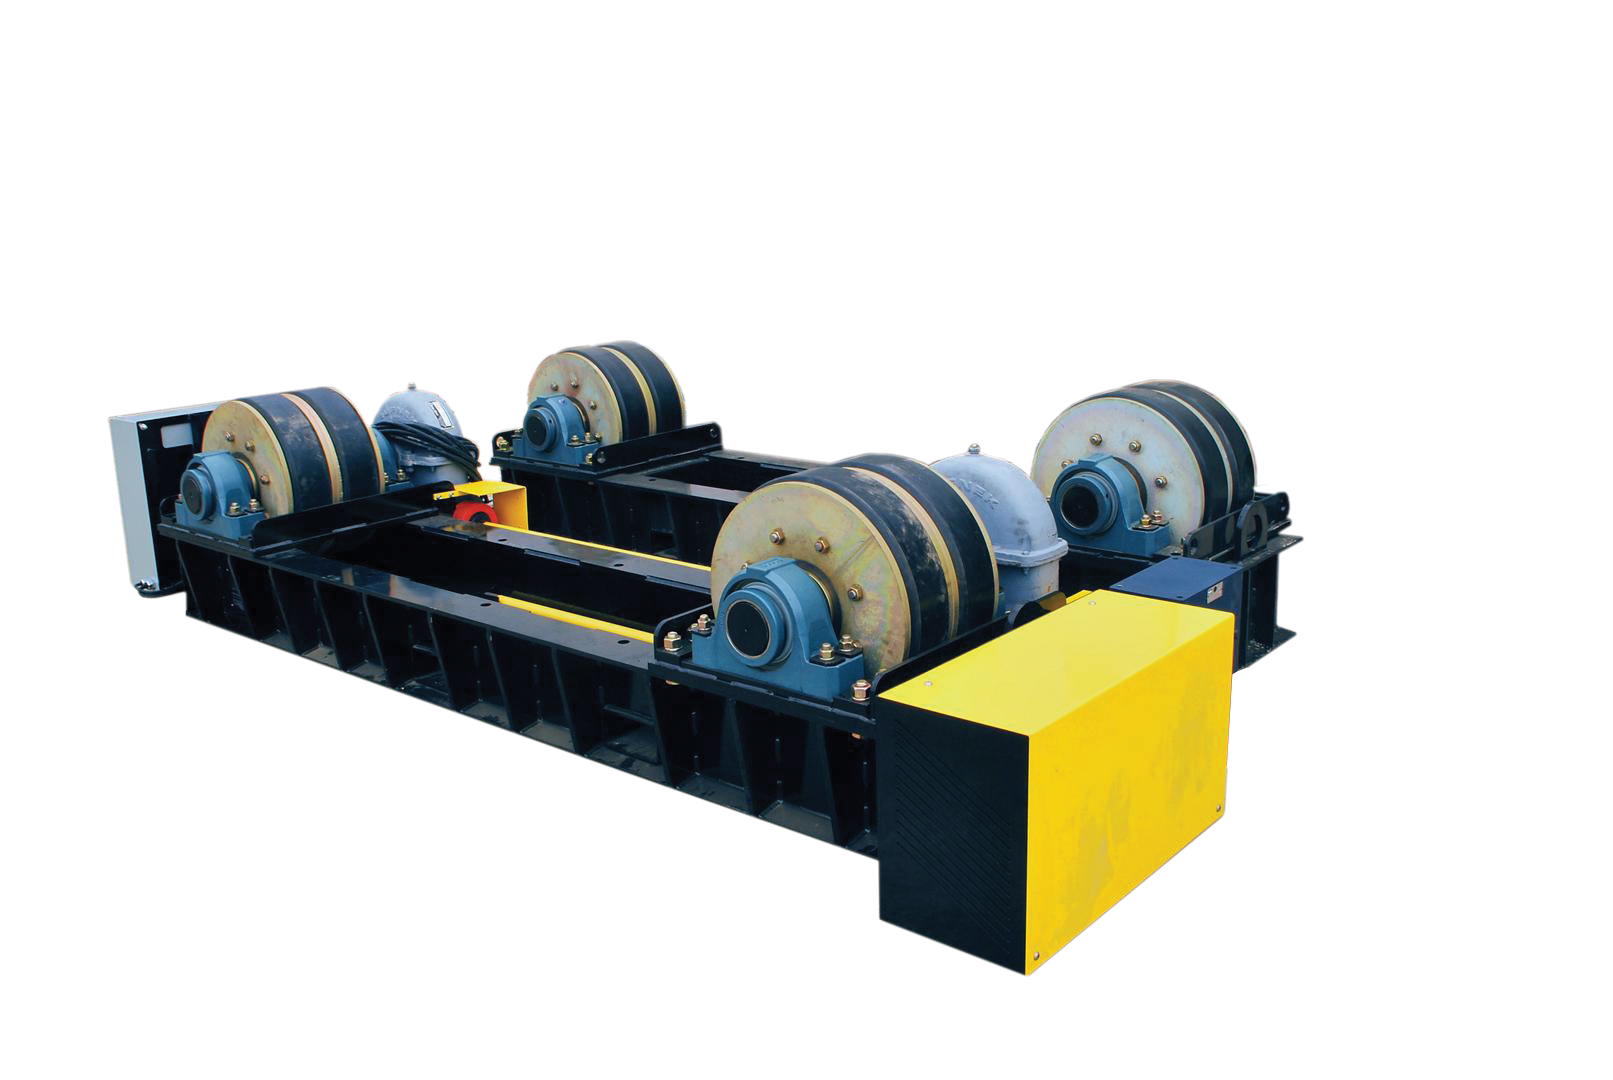 120 ton capacity tank rollers